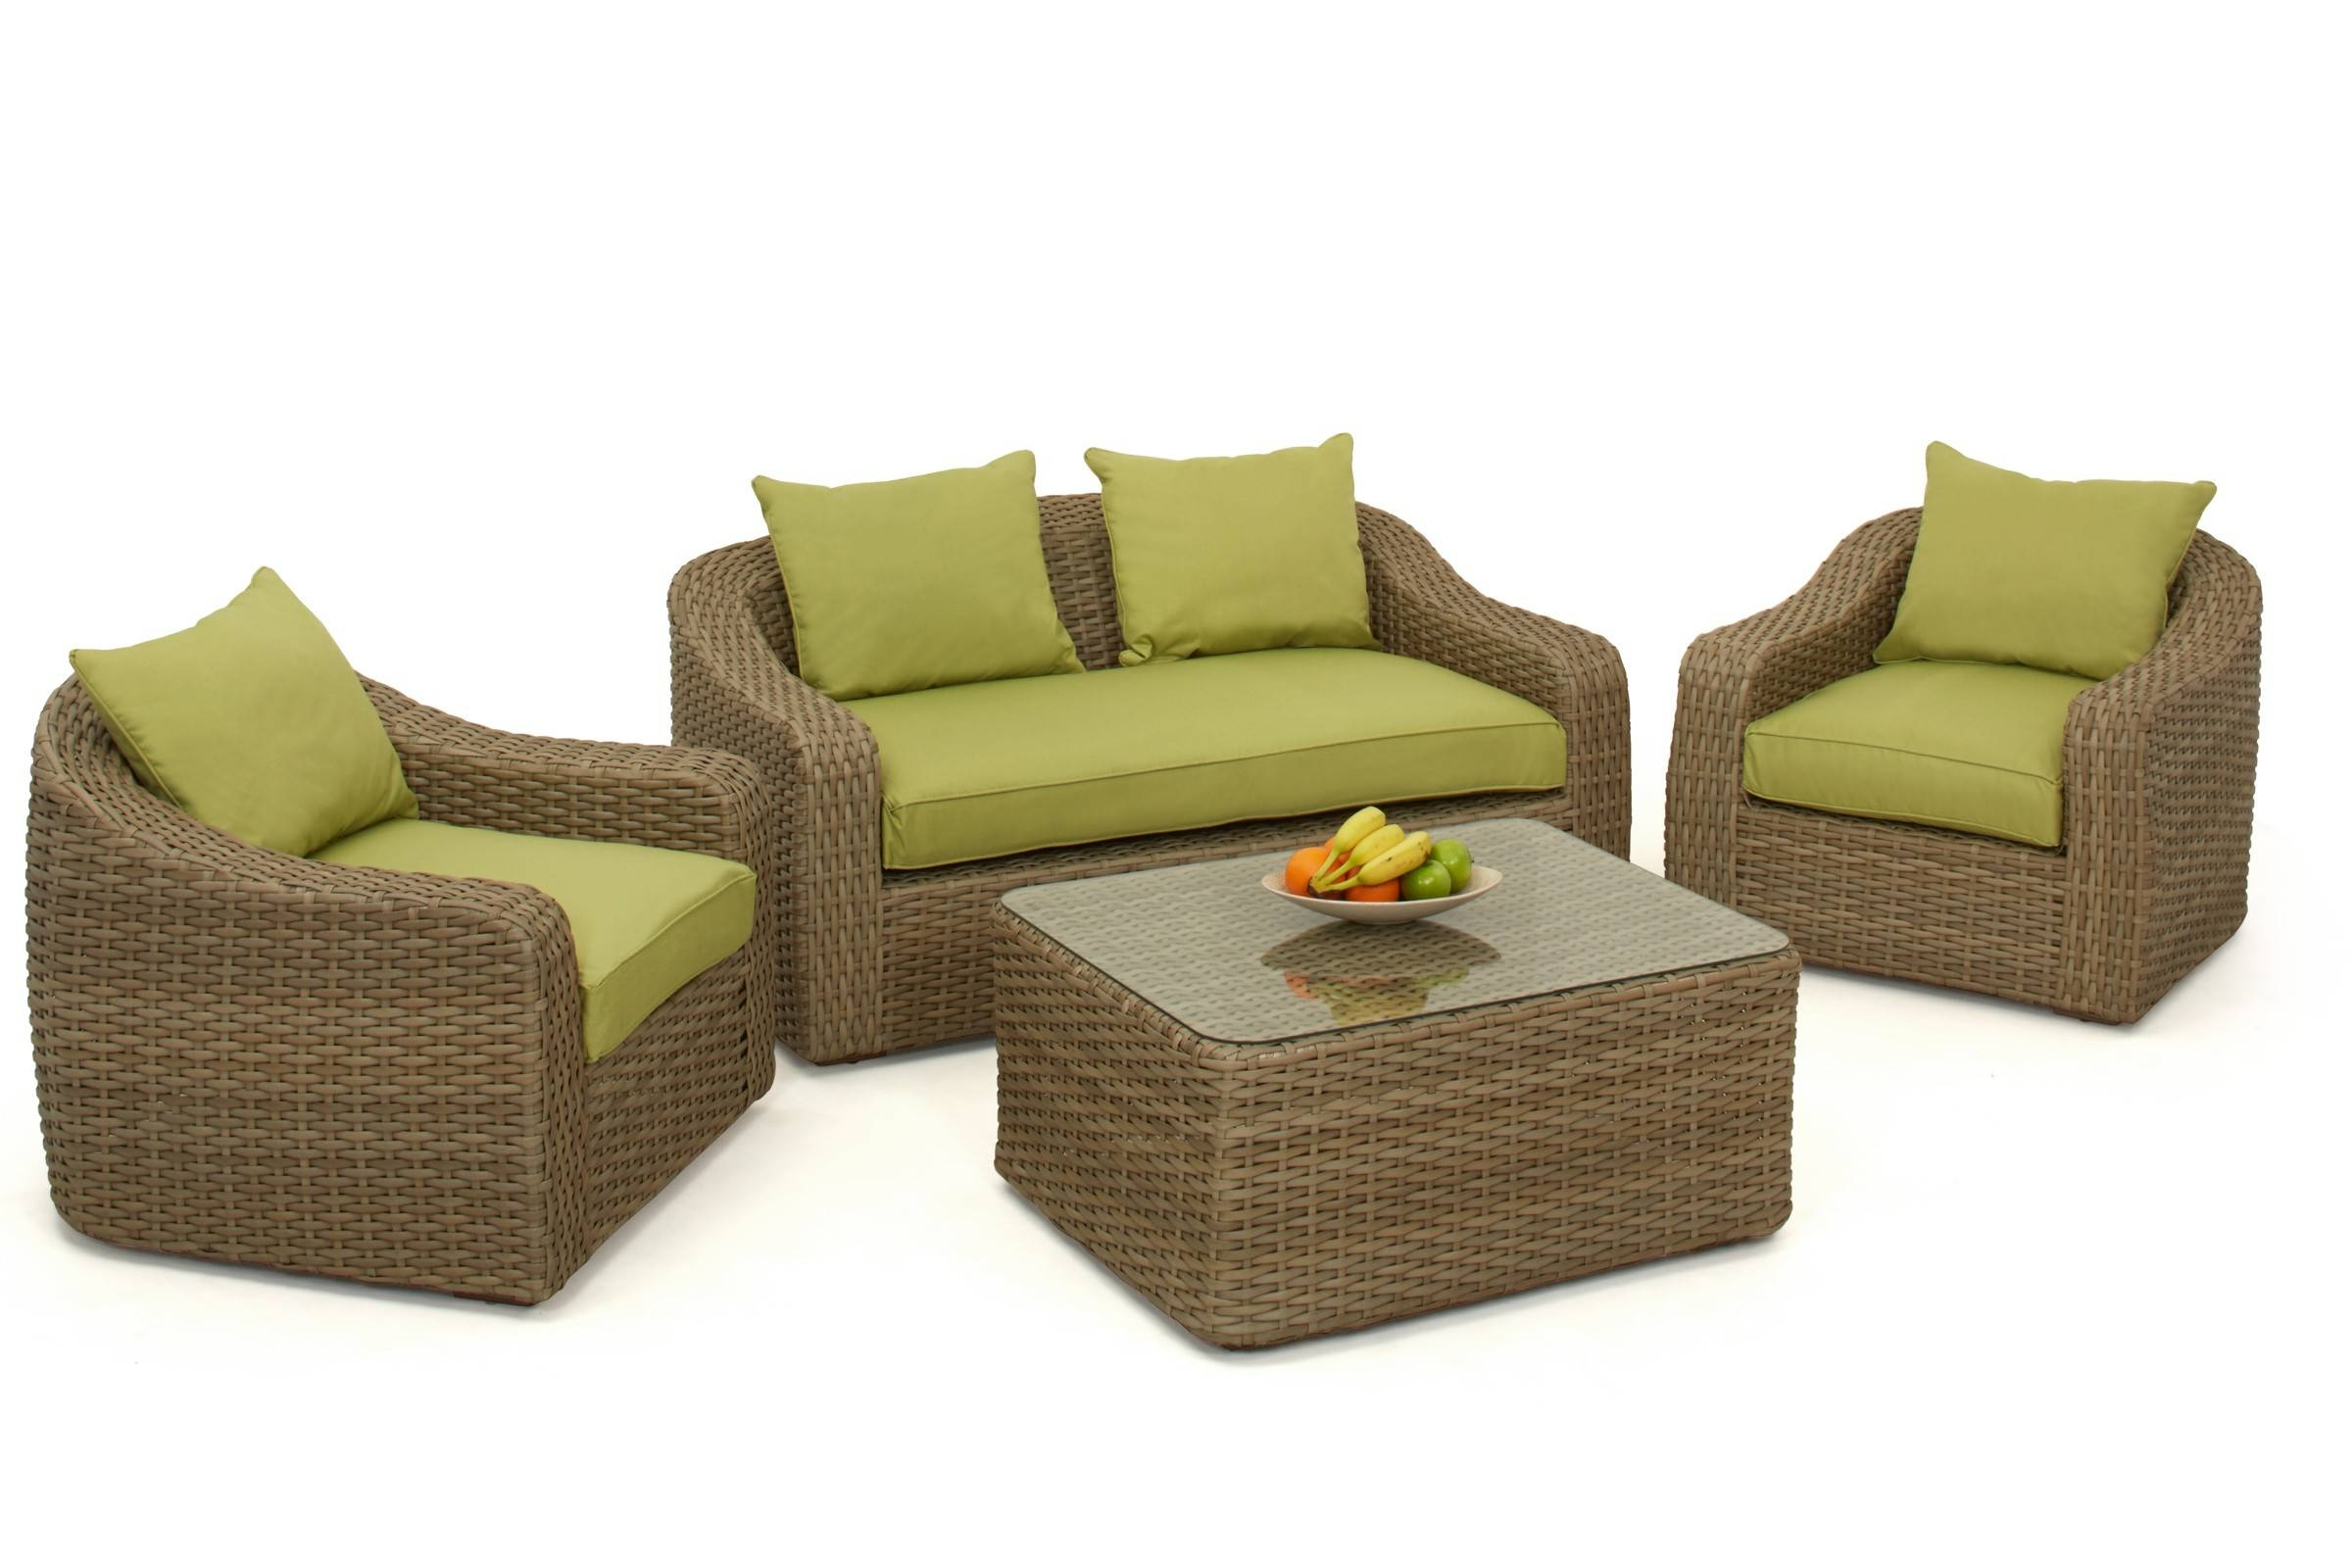 Maze Rattan Milan Rounded Sofa Set | Maze Living pertaining to Rounded Sofa (Image 12 of 25)